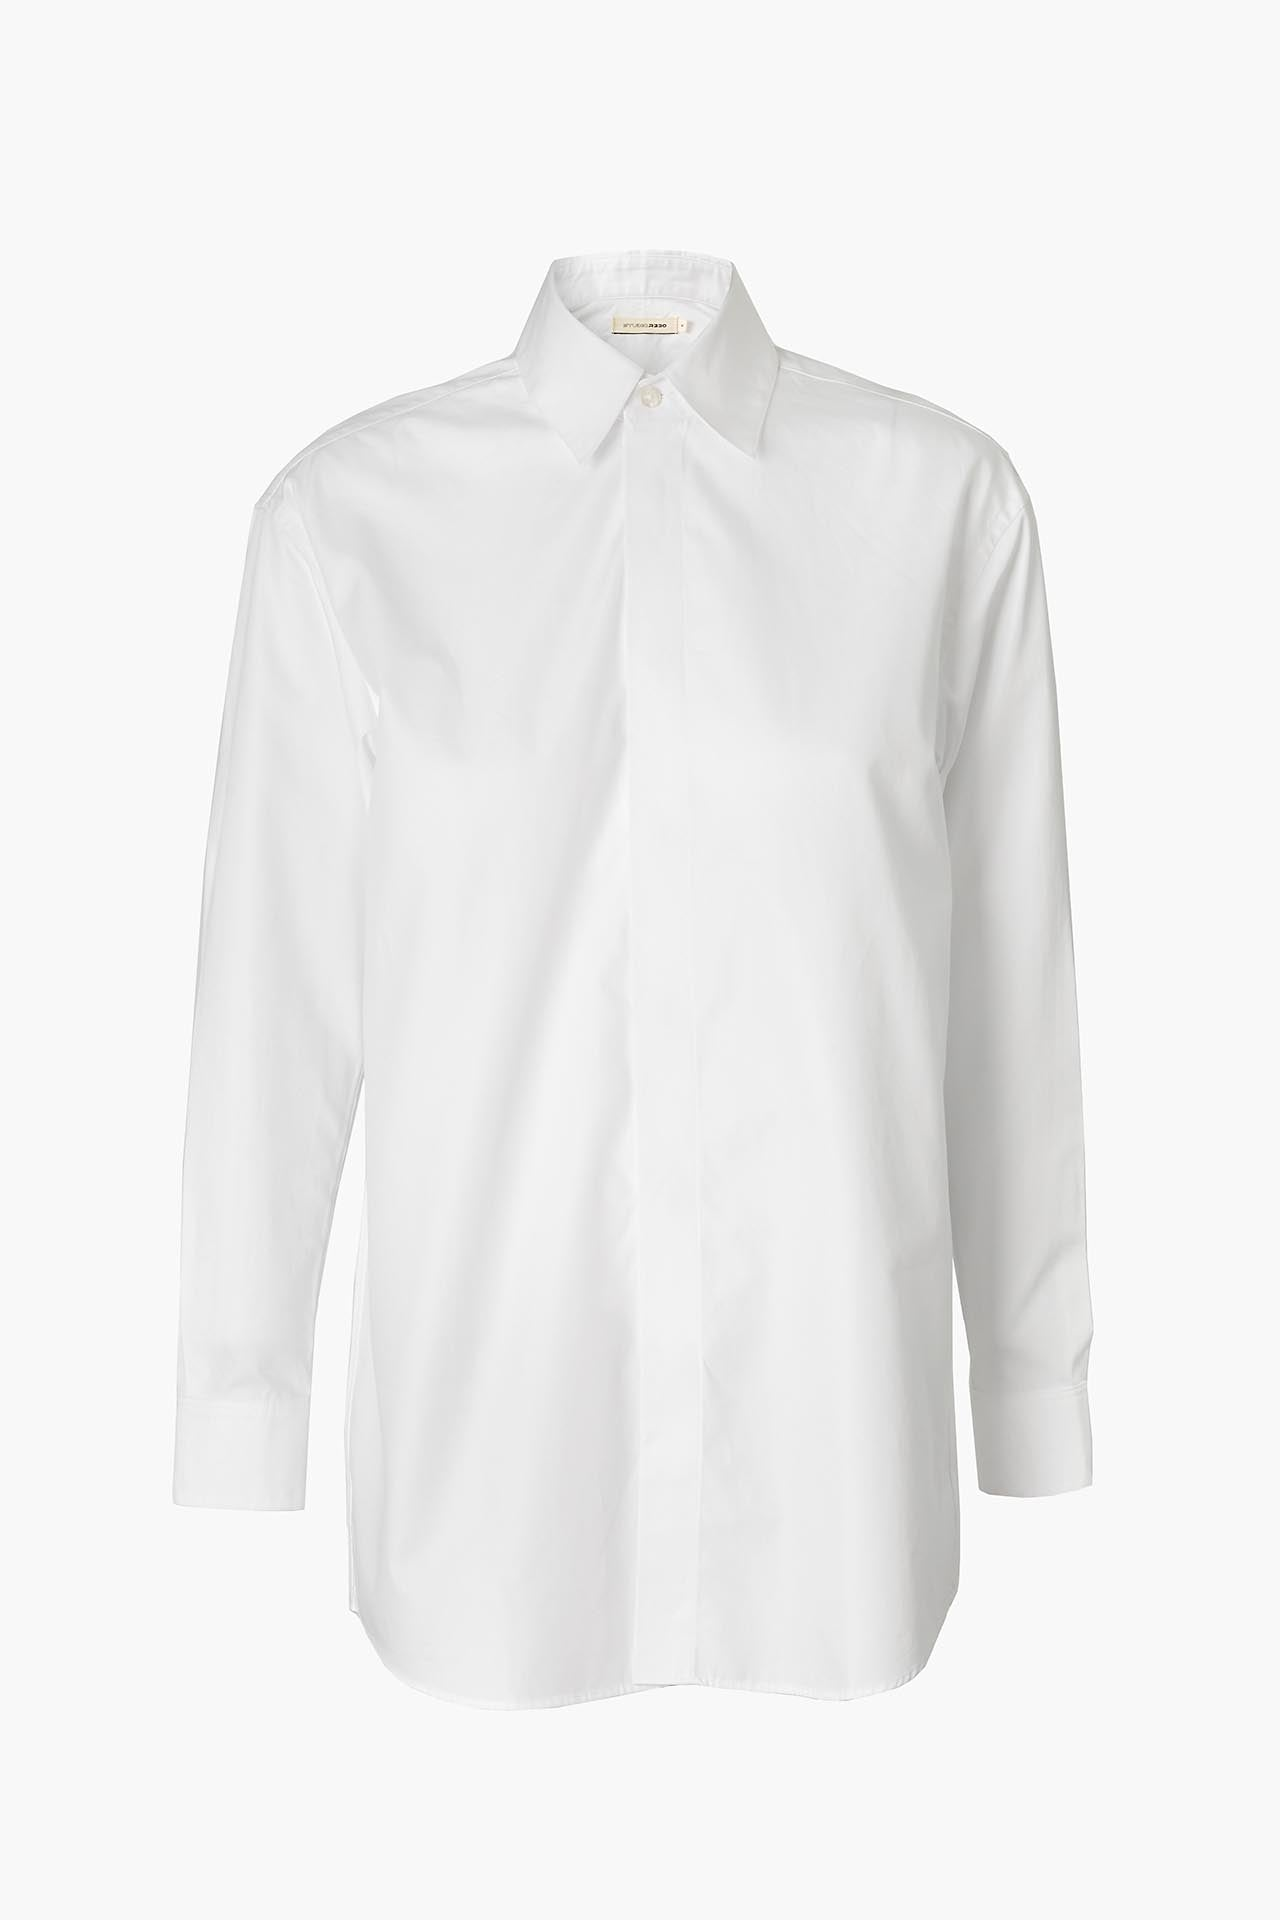 White Cotton Shirt - Regular Fit